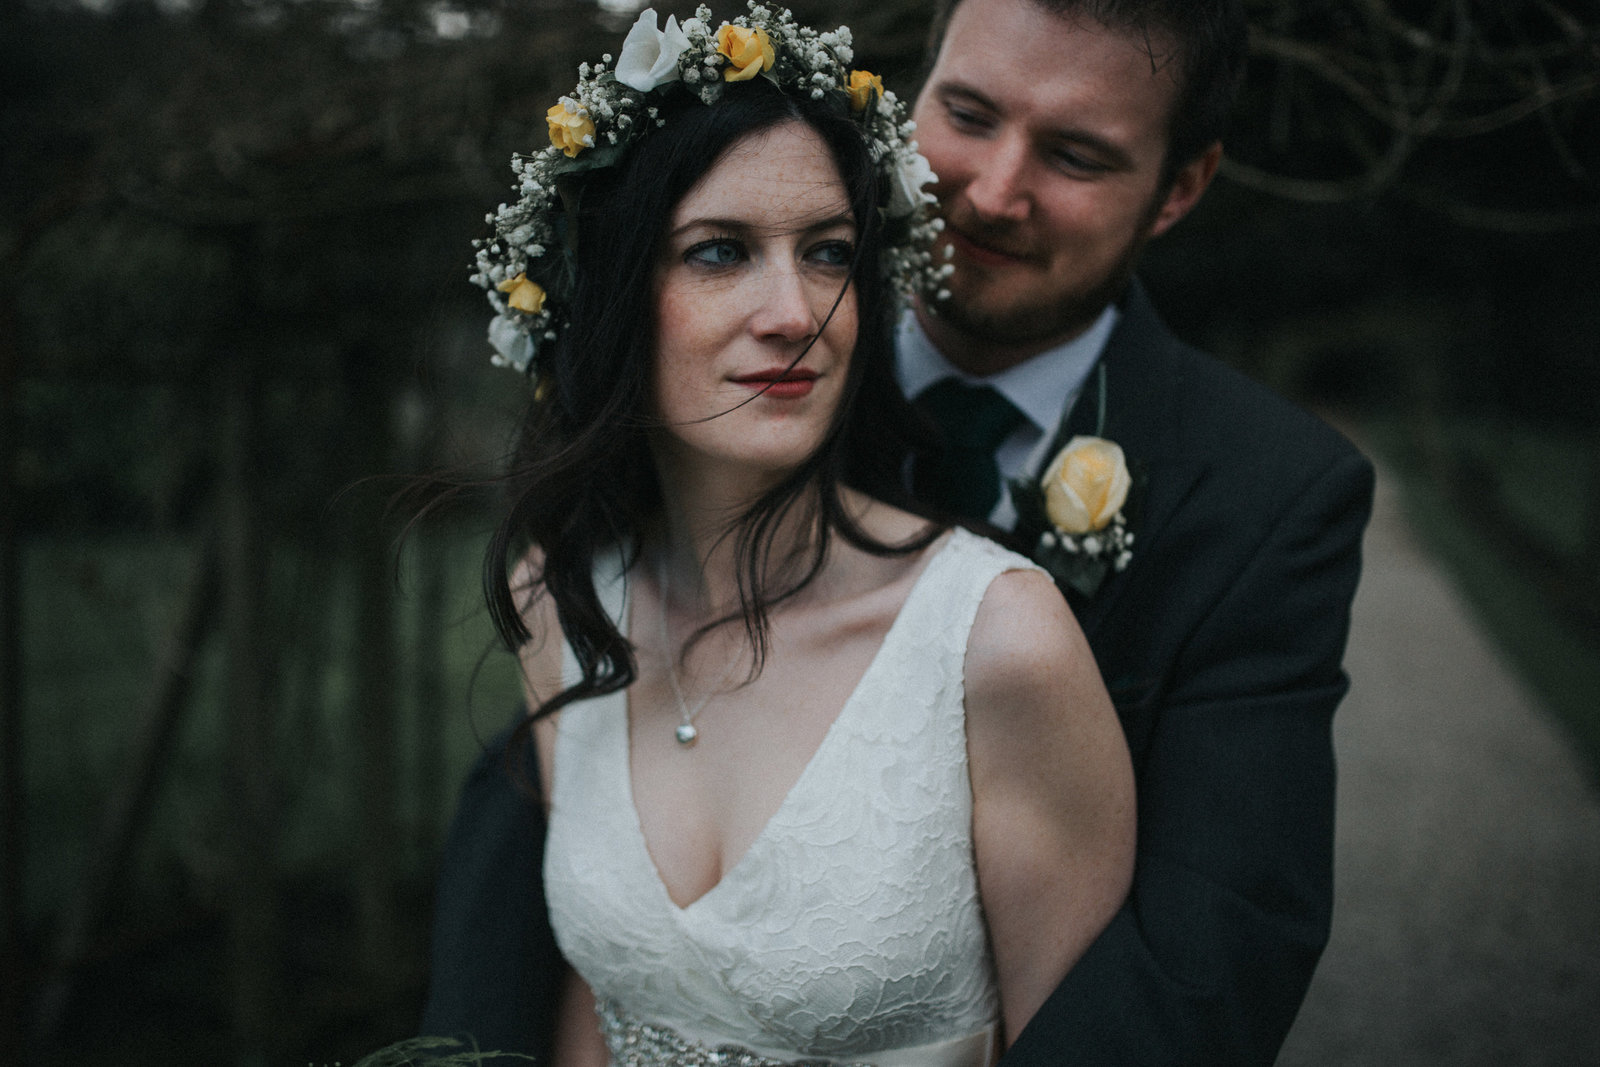 Groom with arms wrapped around his bride who is wearing a floral headpiece looking of camera by Lancashire Wedding Photographer Jono Symonds